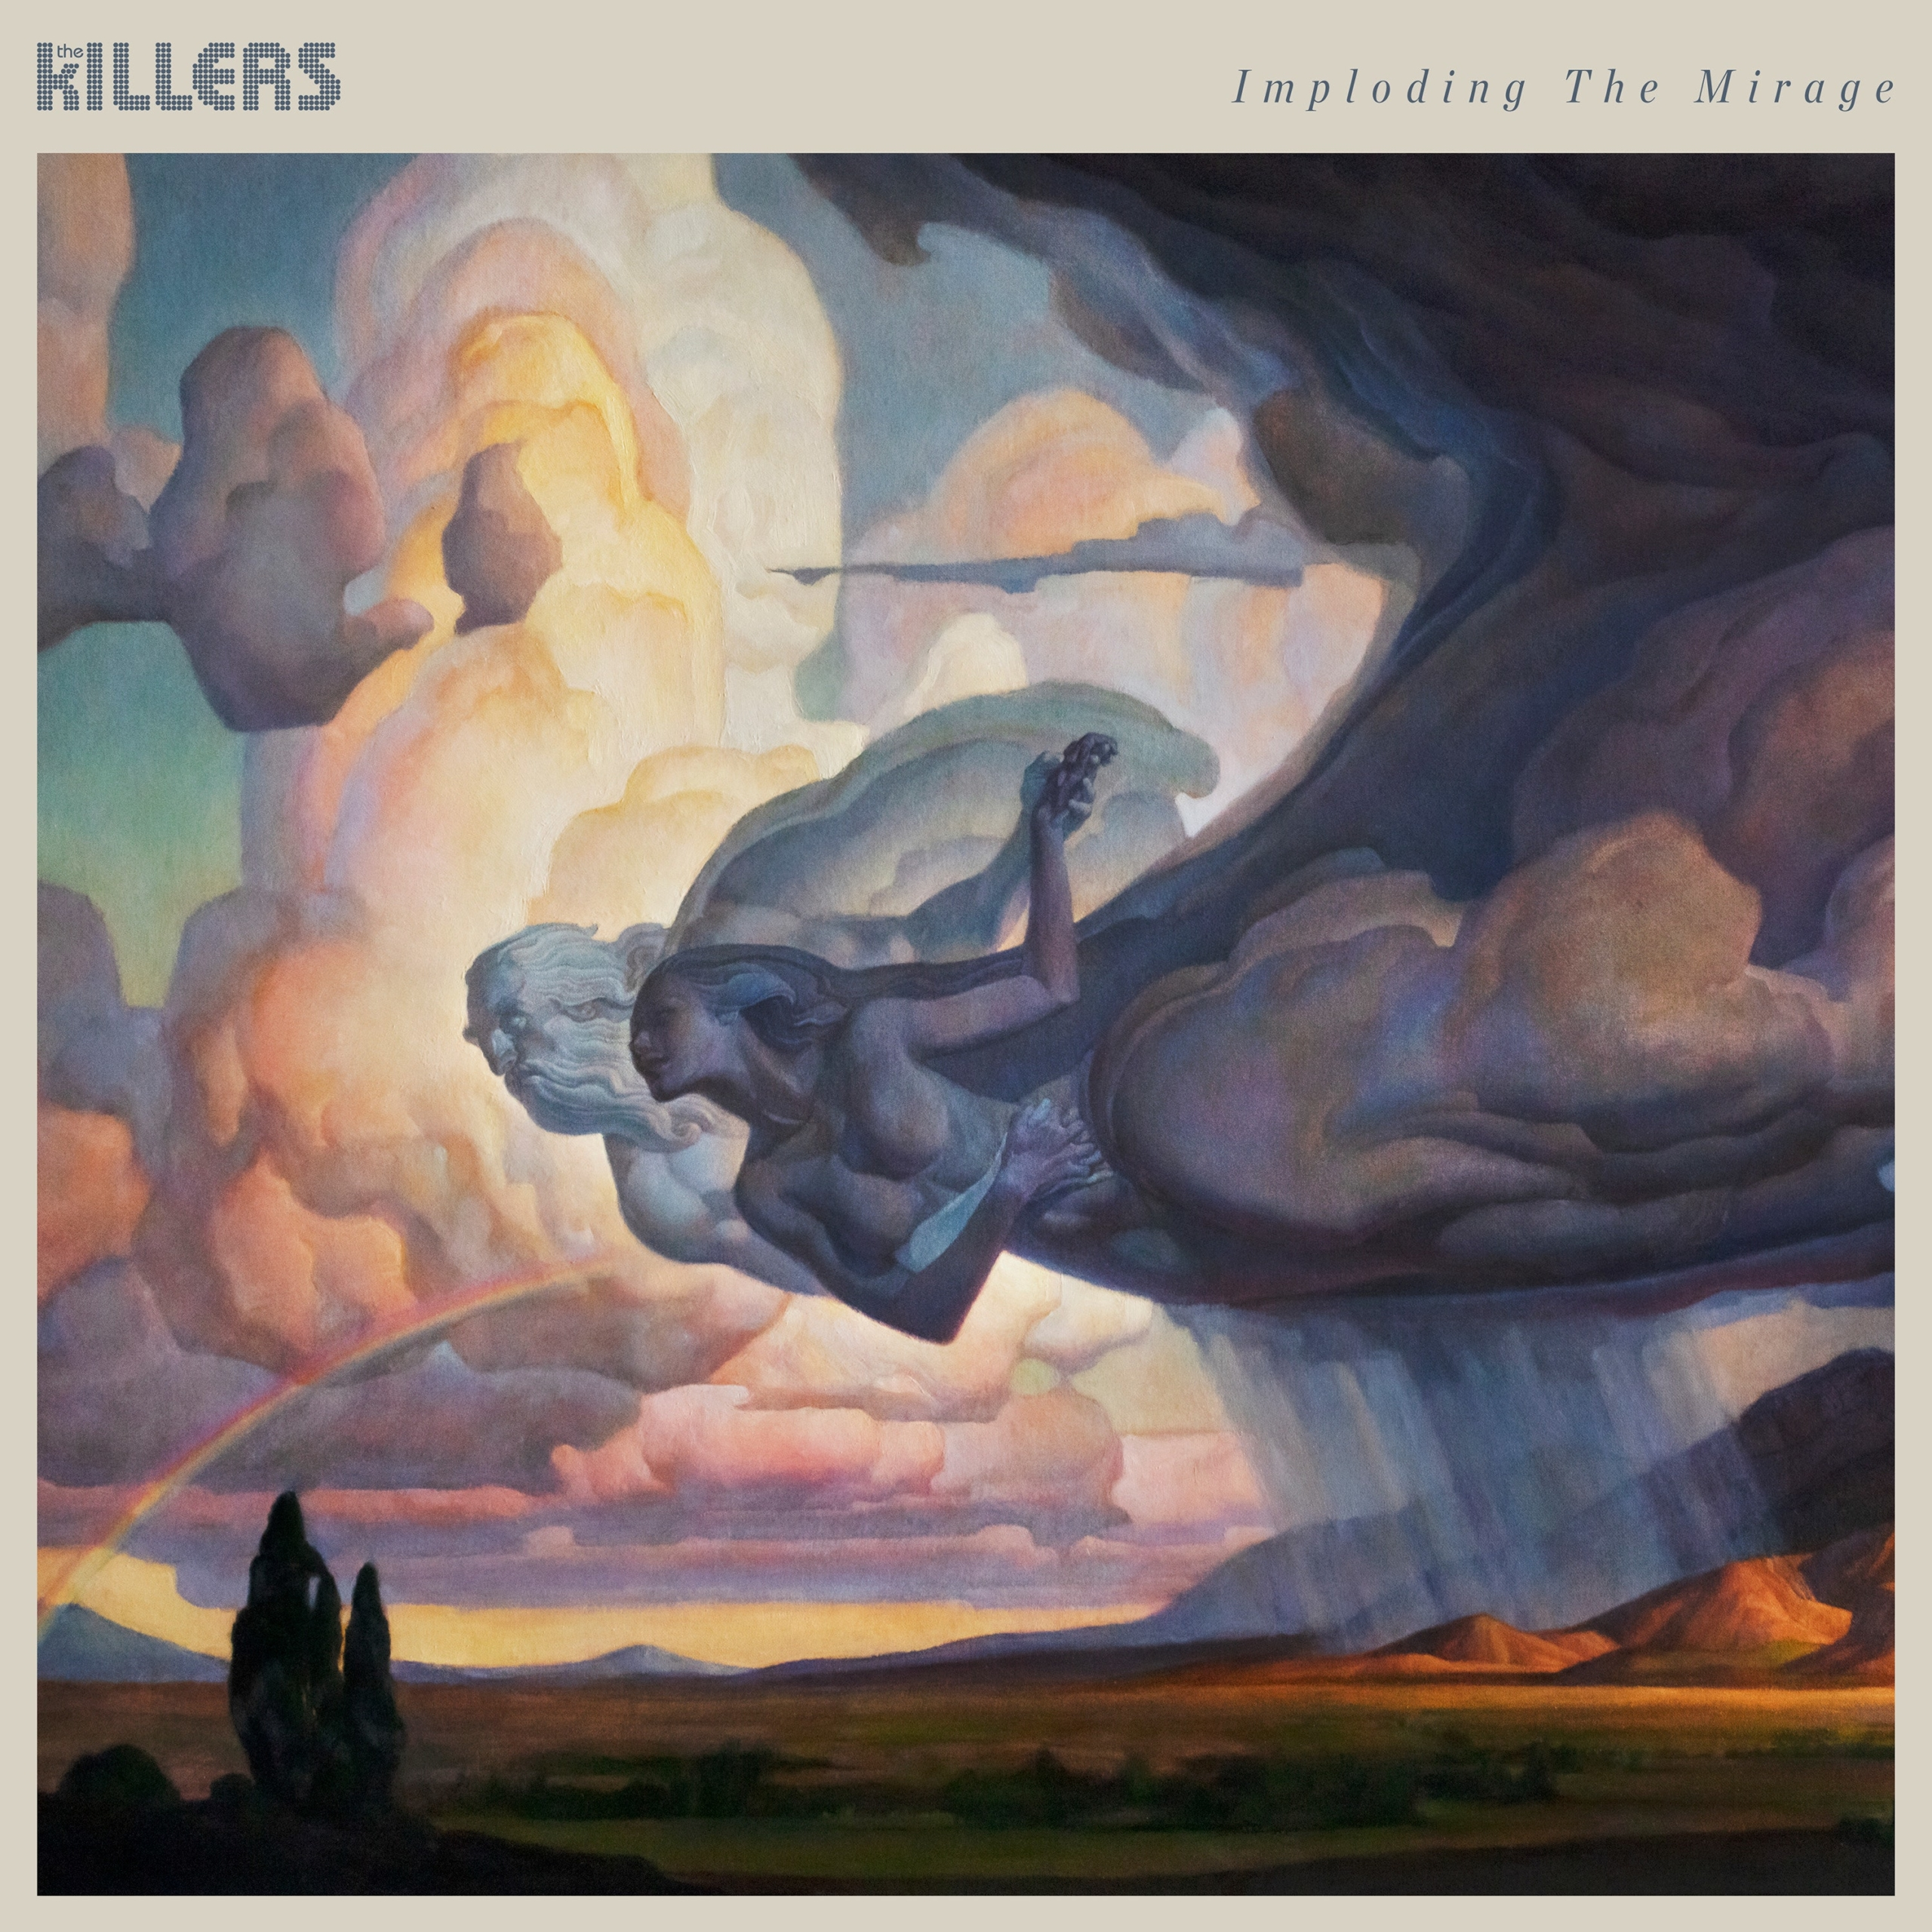 """Track by Track: The Killers, """"Imploding The Mirage"""""""